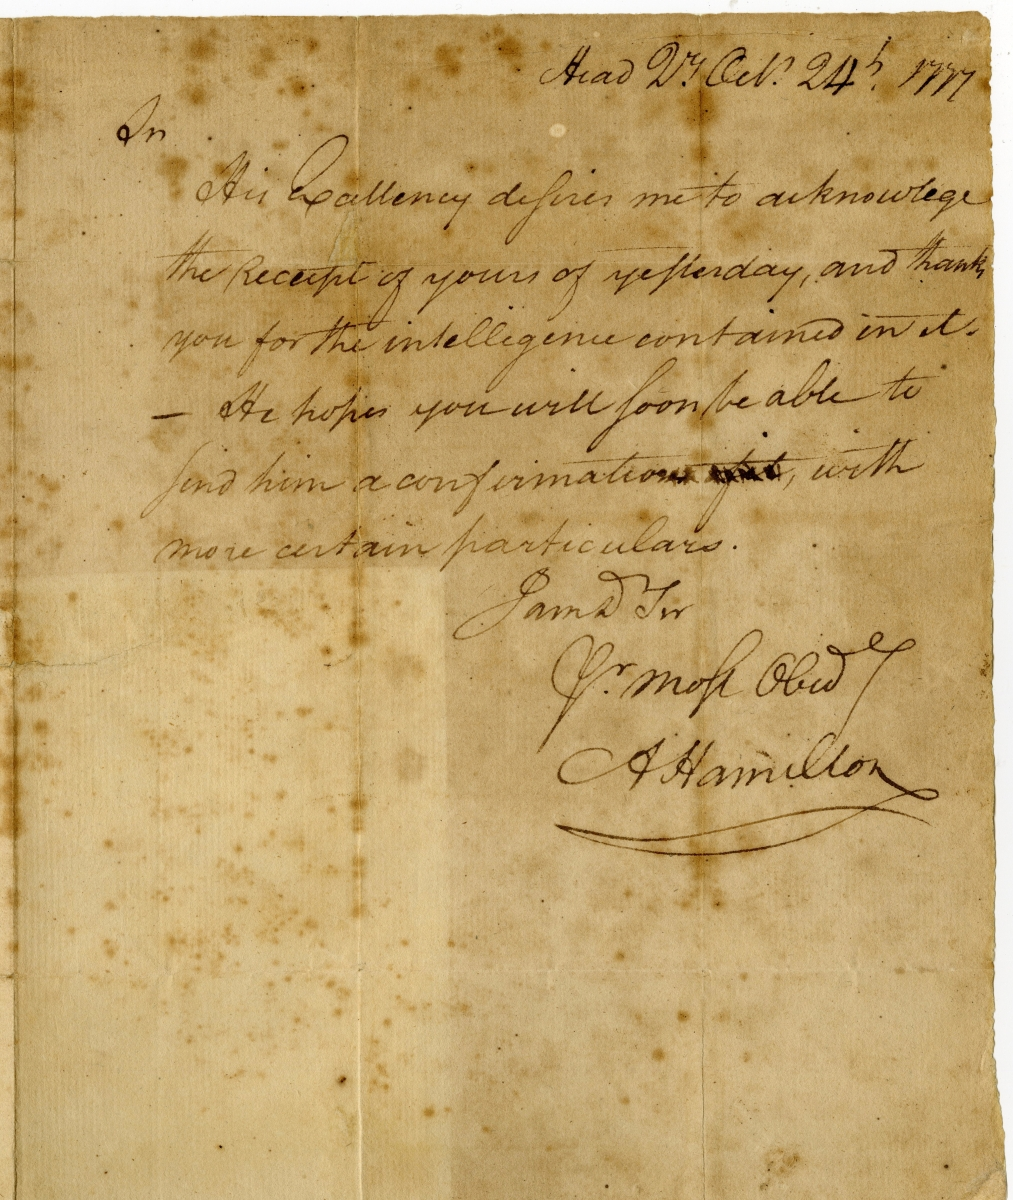 In a letter to George Washington of October 24, 1777, Alexander Hamilton confirms intelligence on the movement of Hessian troops.